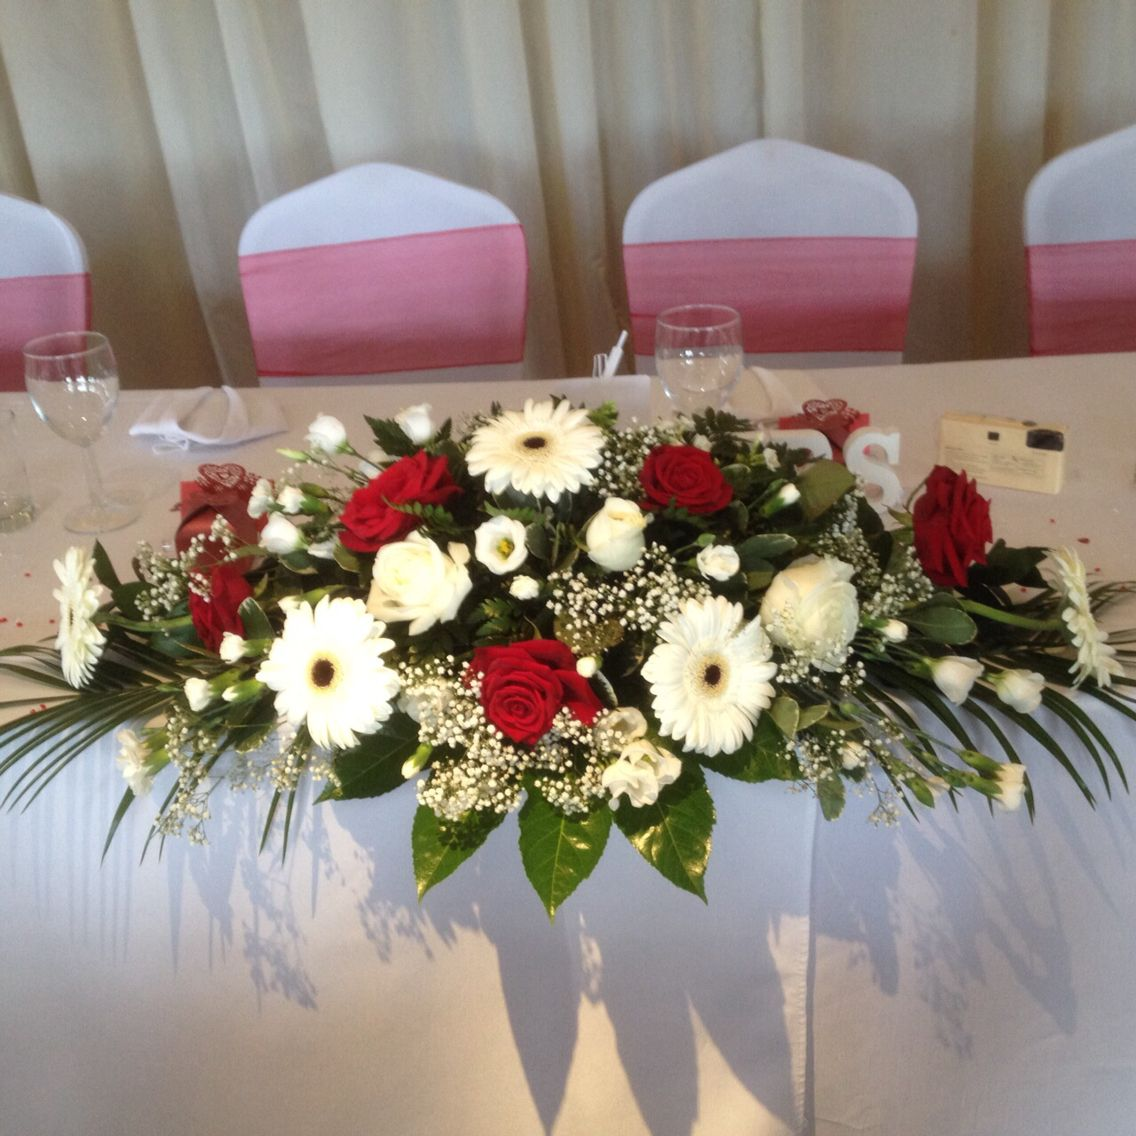 Wedding Flower Arrangements: Top Table Arrangement In Roses And Gerbera Red And White